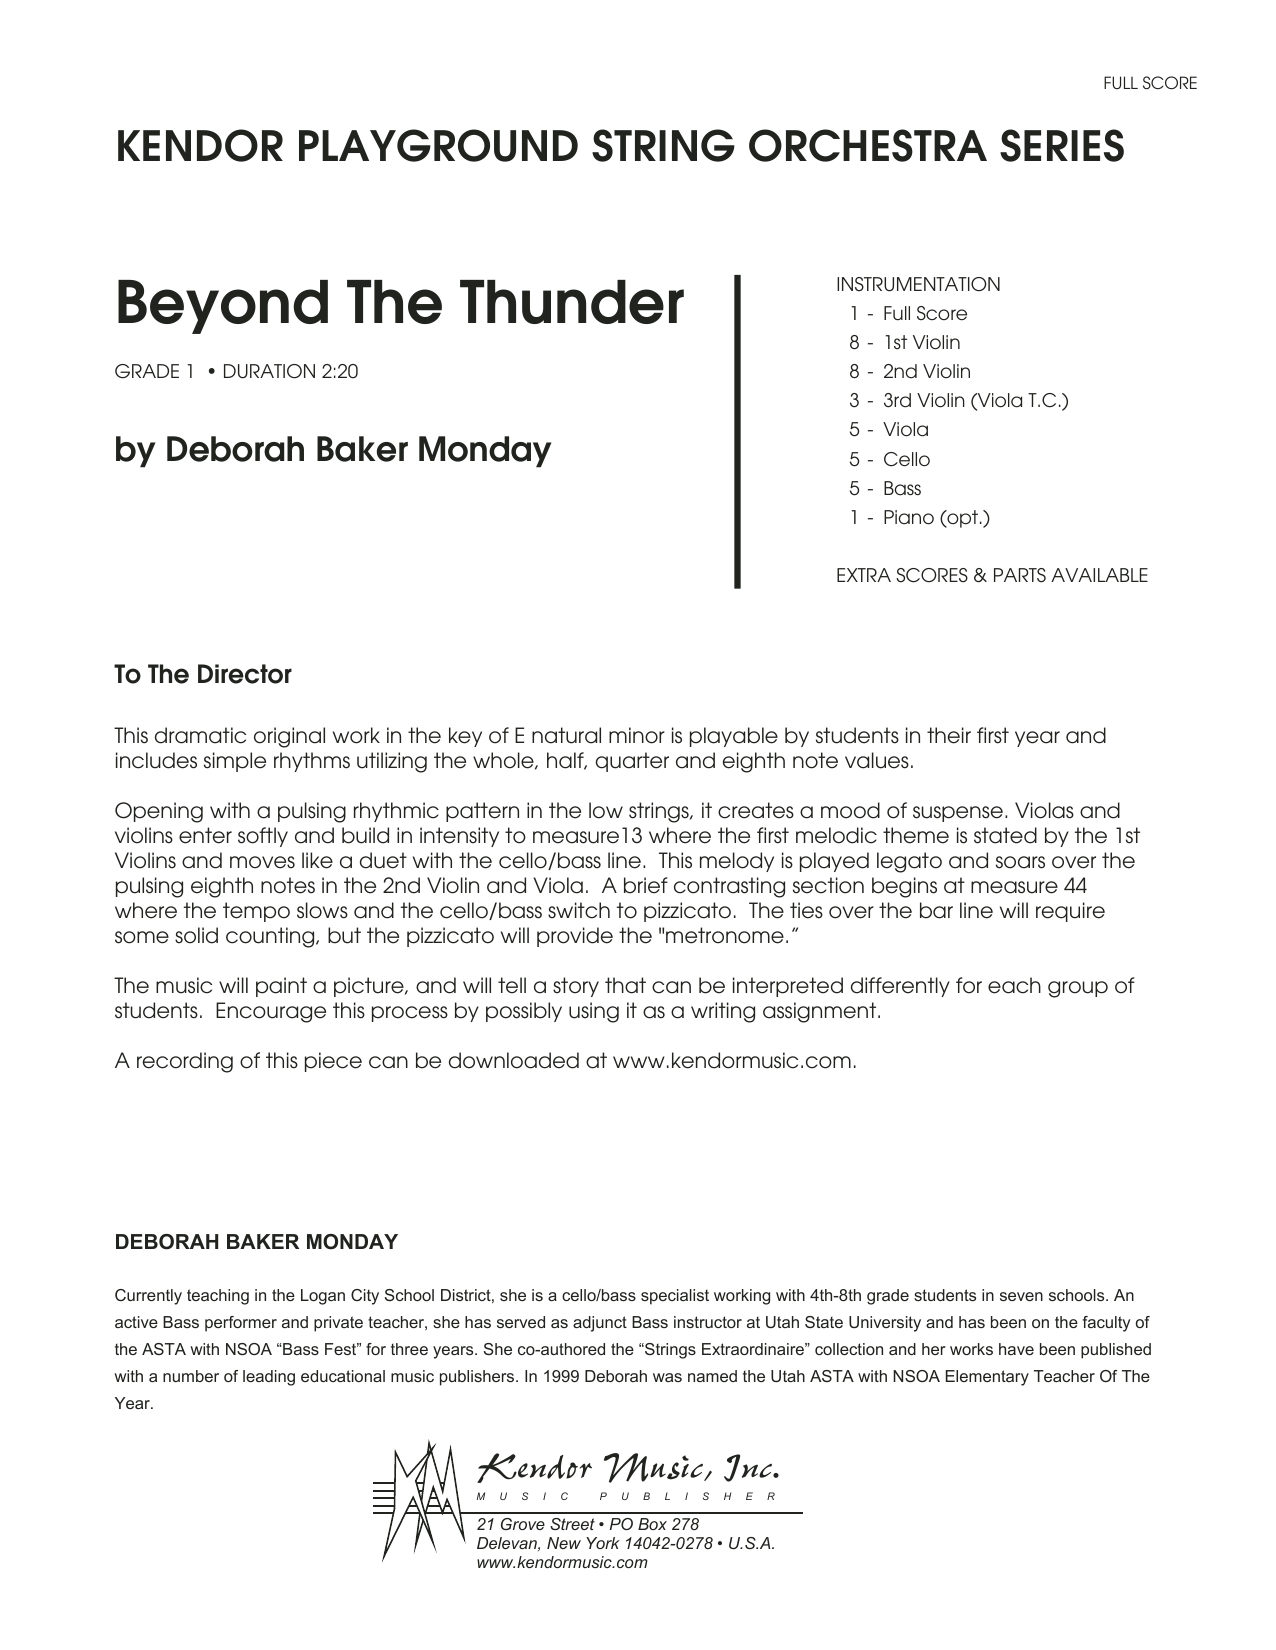 Beyond The Thunder - Full Score